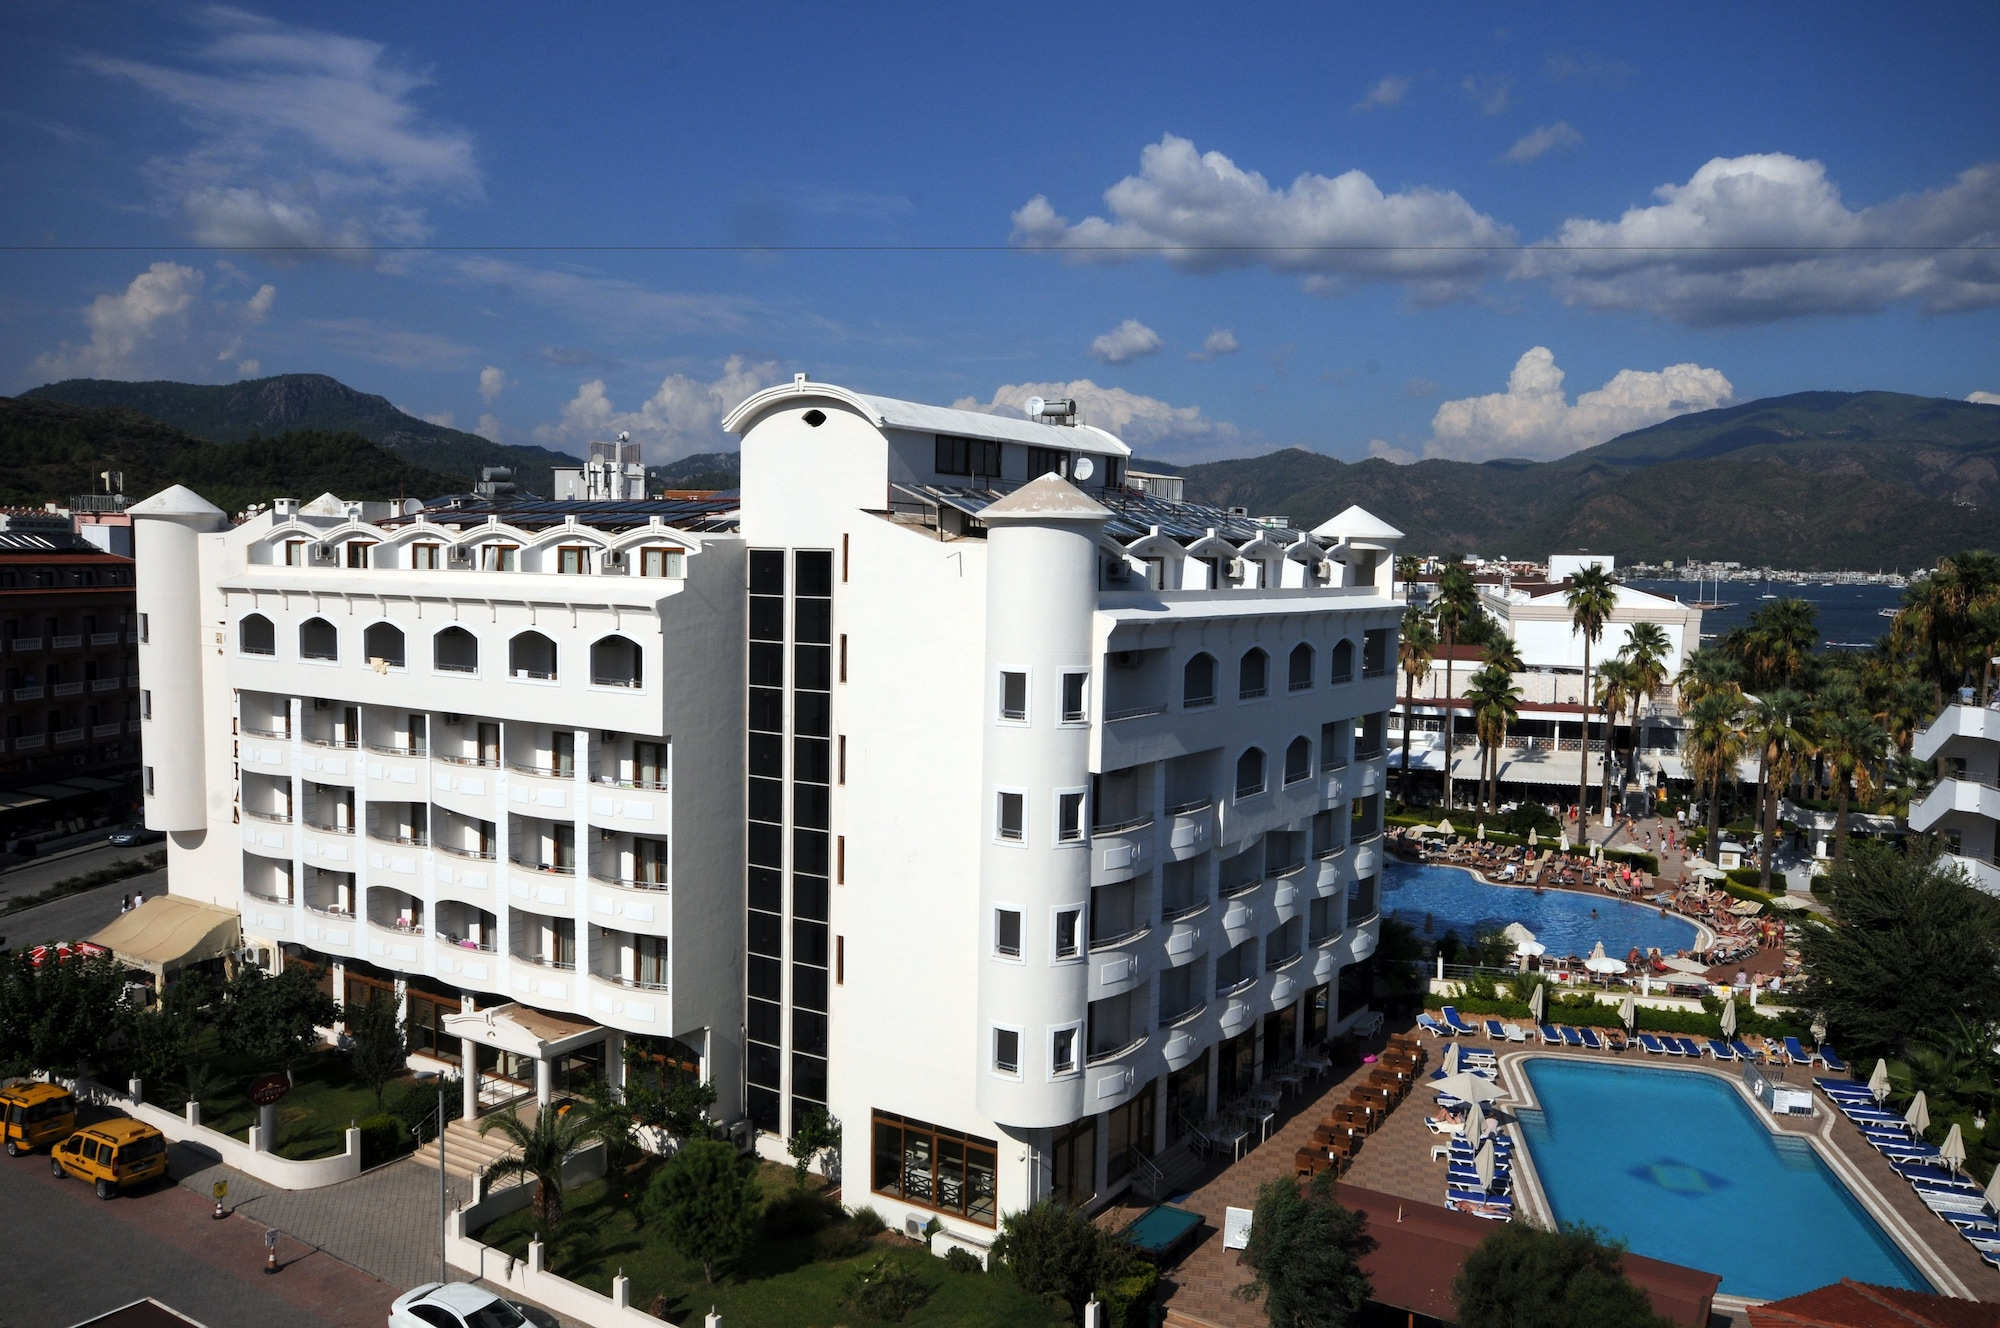 Hotel My Dream, Marmaris